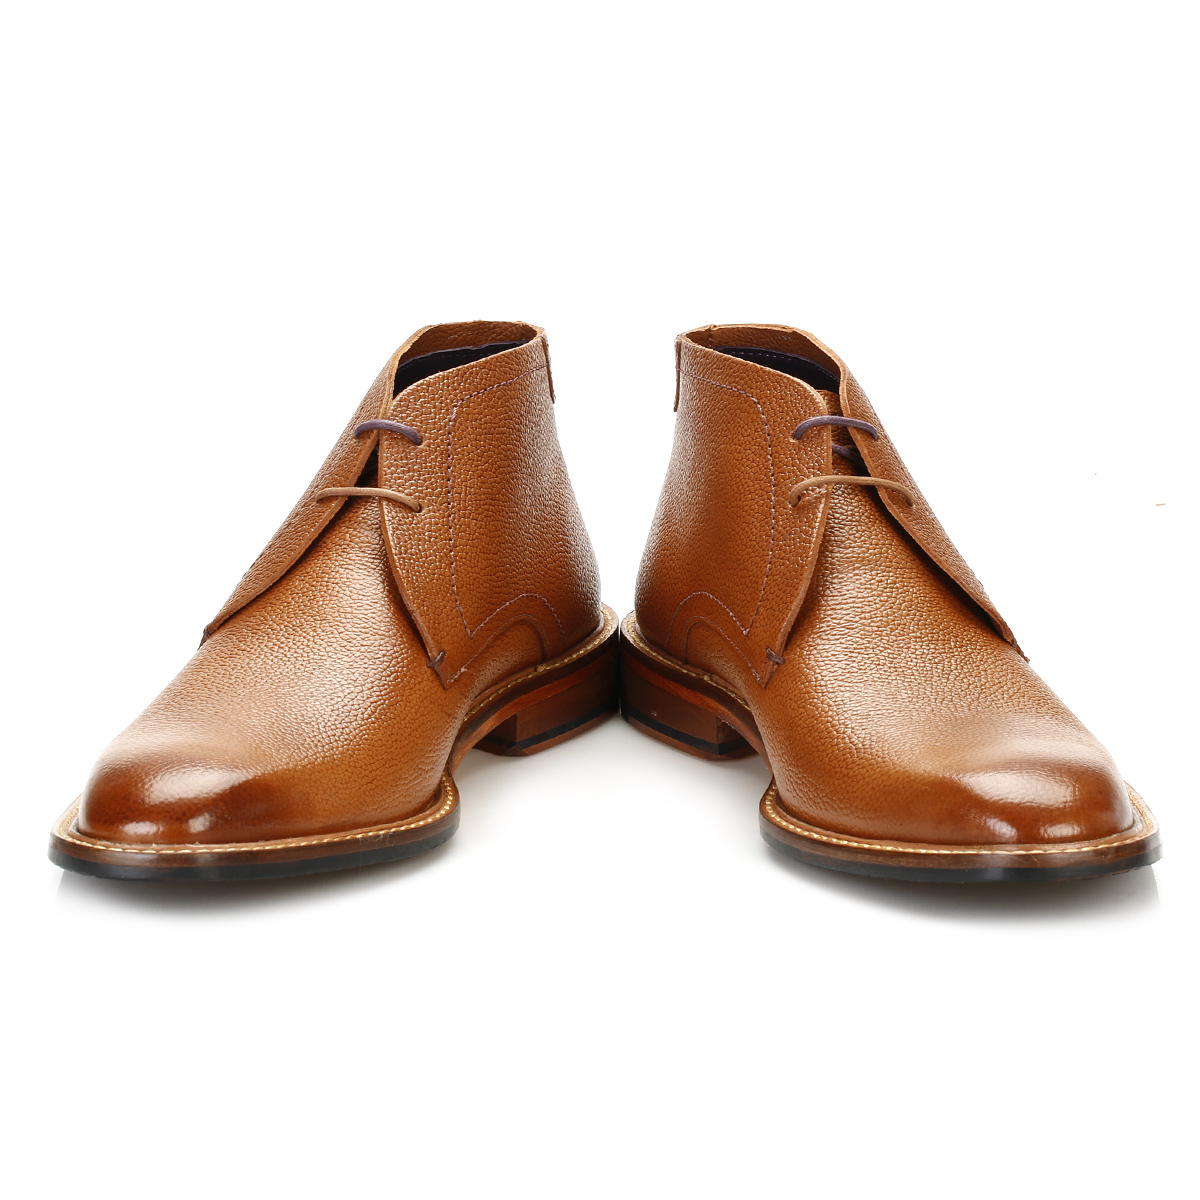 ted baker mens leather ankle boots smart casual